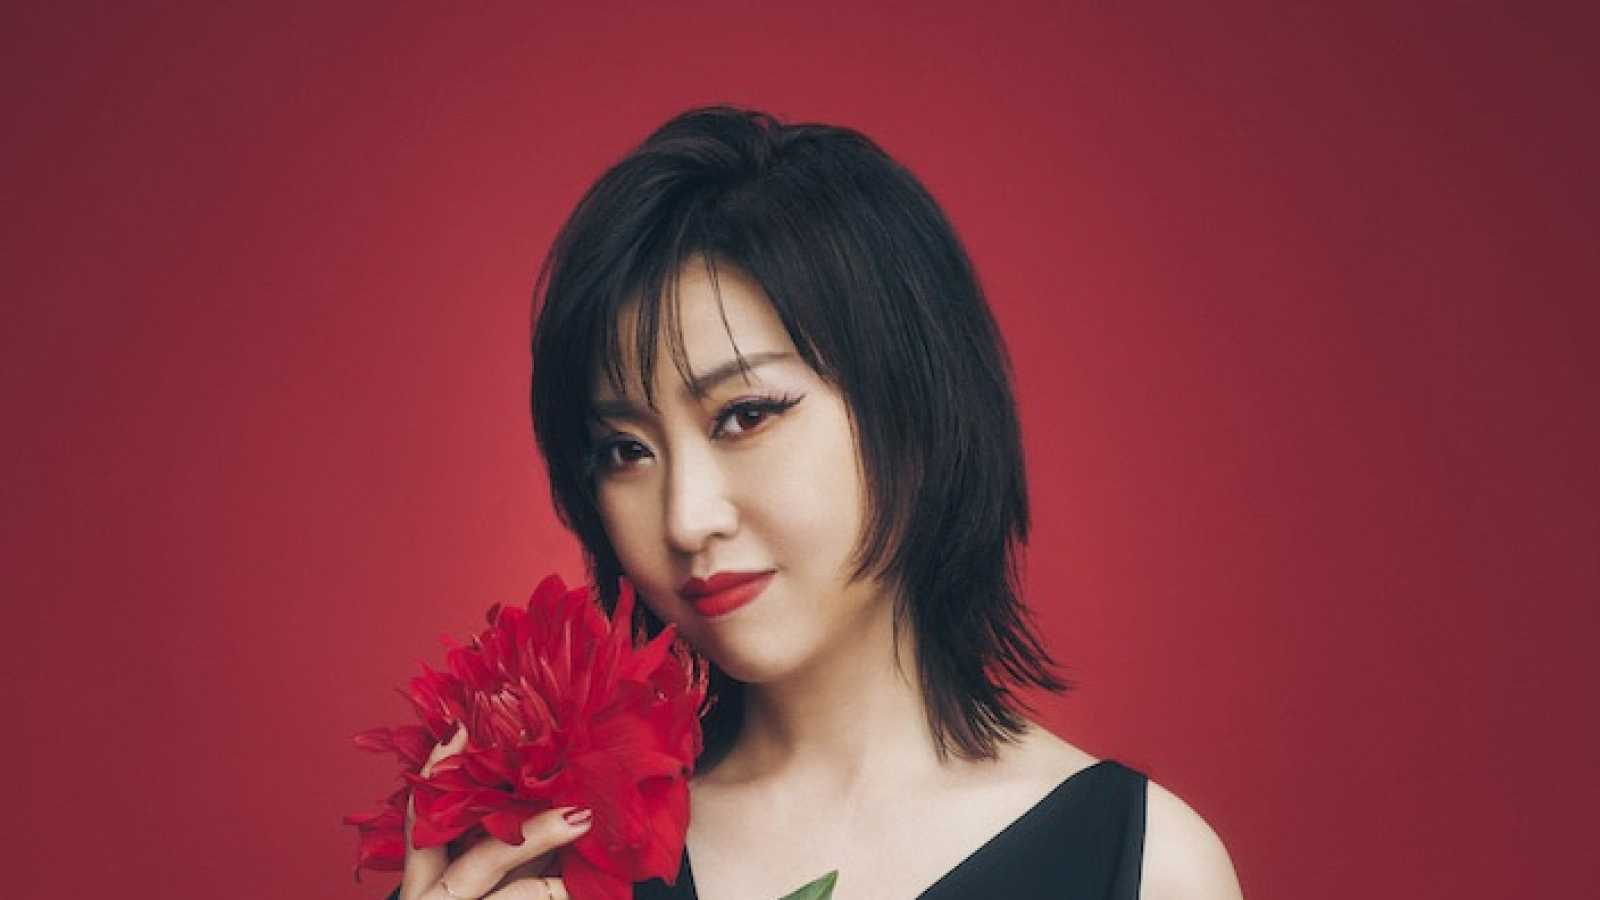 New Single from Megumi Hayashibara © KING RECORD CO., LTD. All rights reserved.